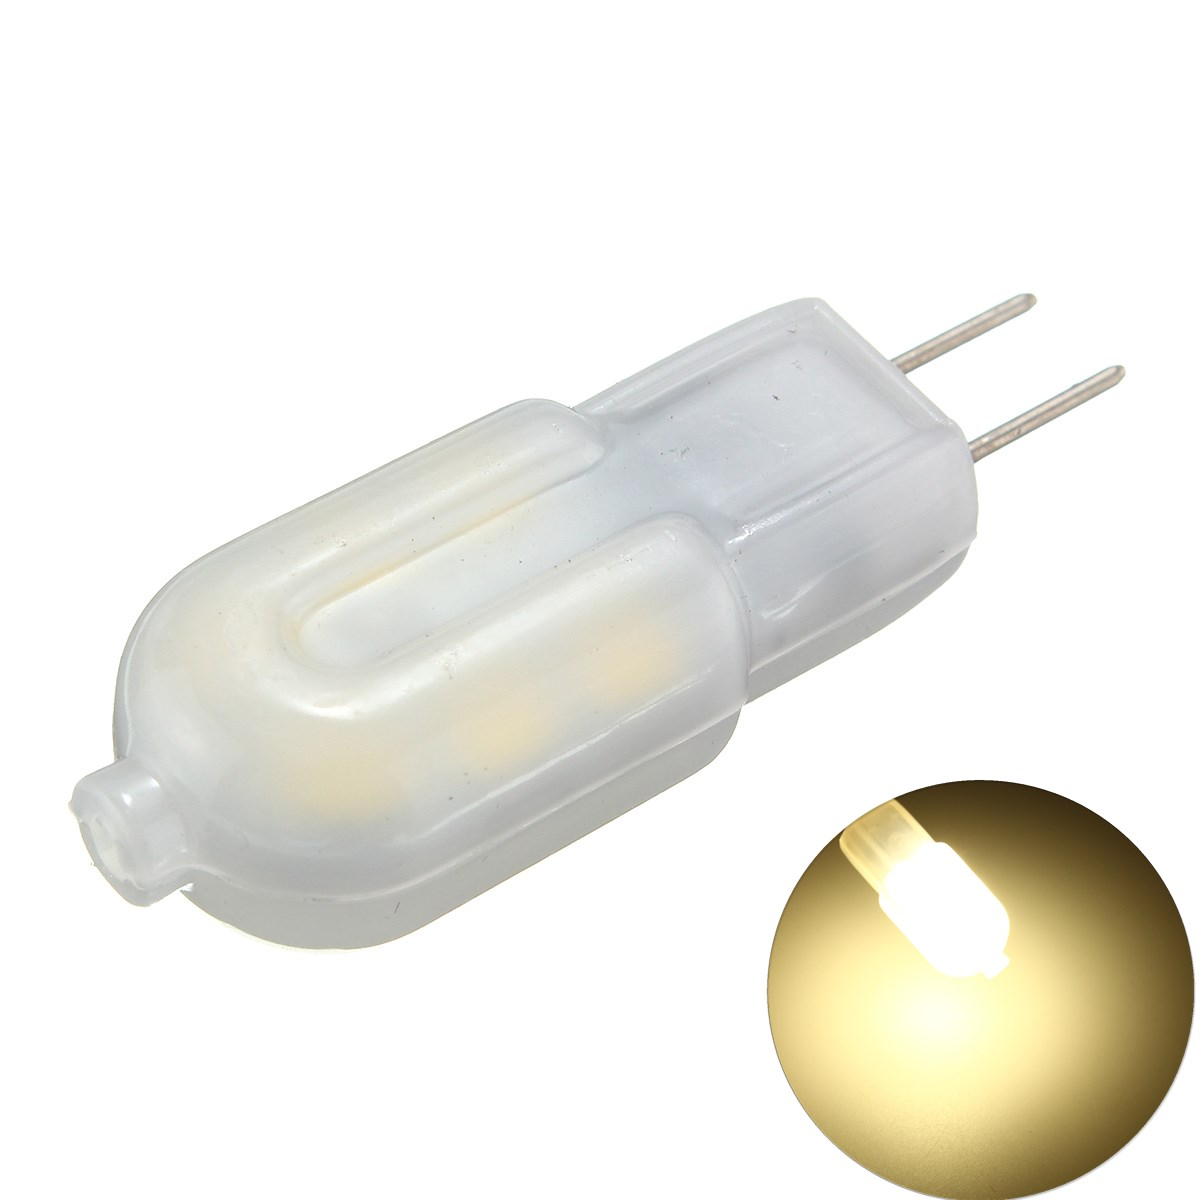 6PCS DC12V G4 2W Non-dimmable SMD2835 Natural White Milk Cover LED Light Bulb for Indoor Home Decor